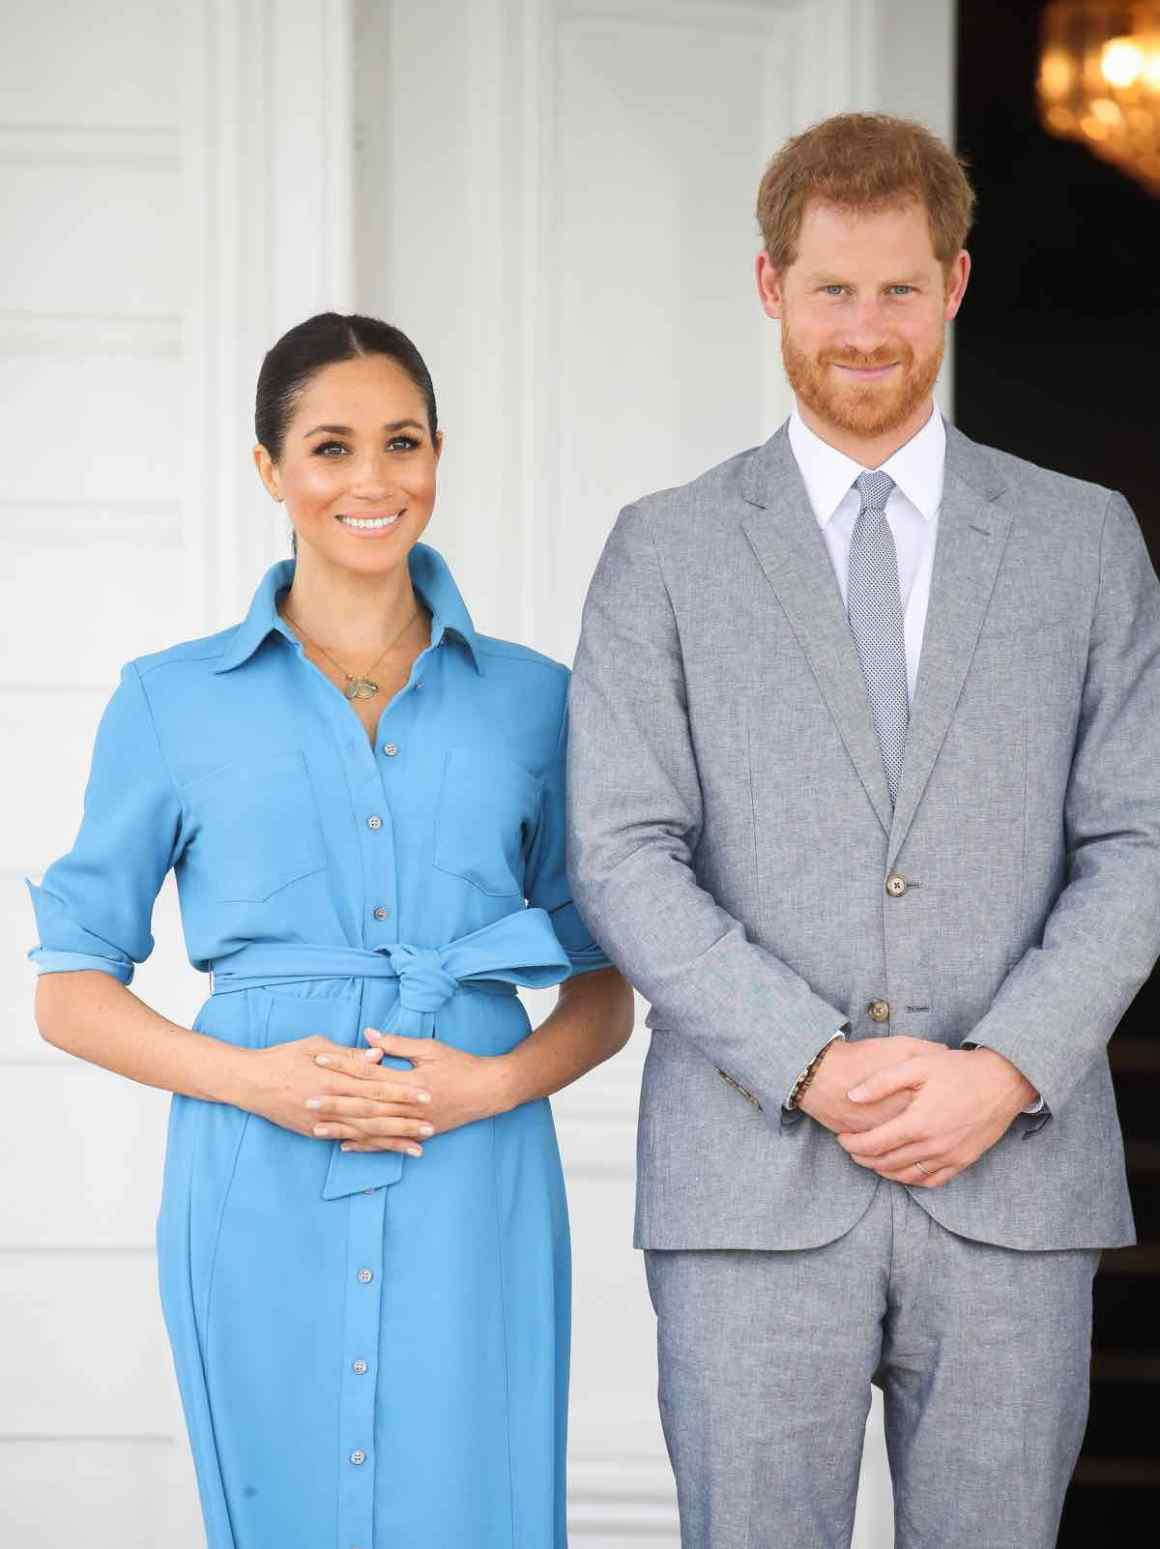 About Those Prince Harry and Meghan Markle Netflix Reality Show Rumors 1